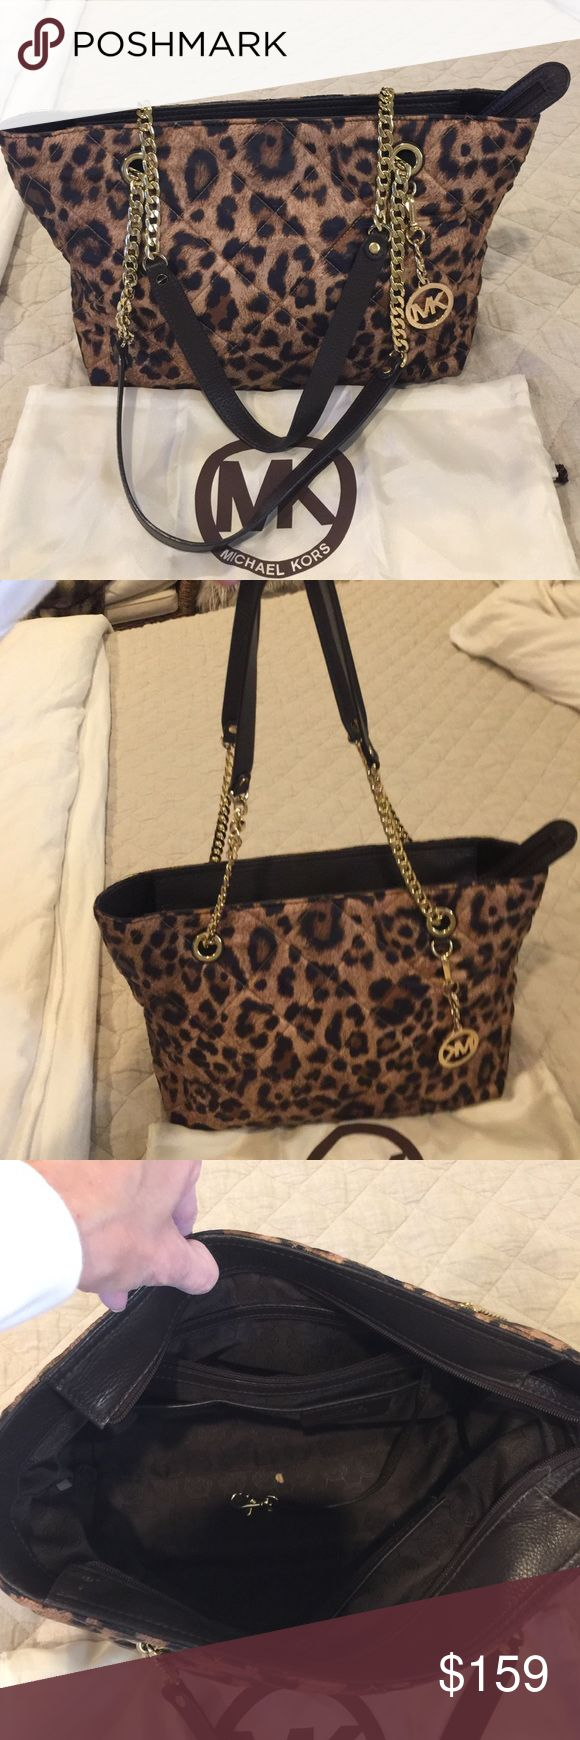 Michael Kors animal print bag Like new! Soft quilted material. Brown leather. Gold chain handles and MK. Zip top closure. No signs of wear. Michael Kors Bags Shoulder Bags